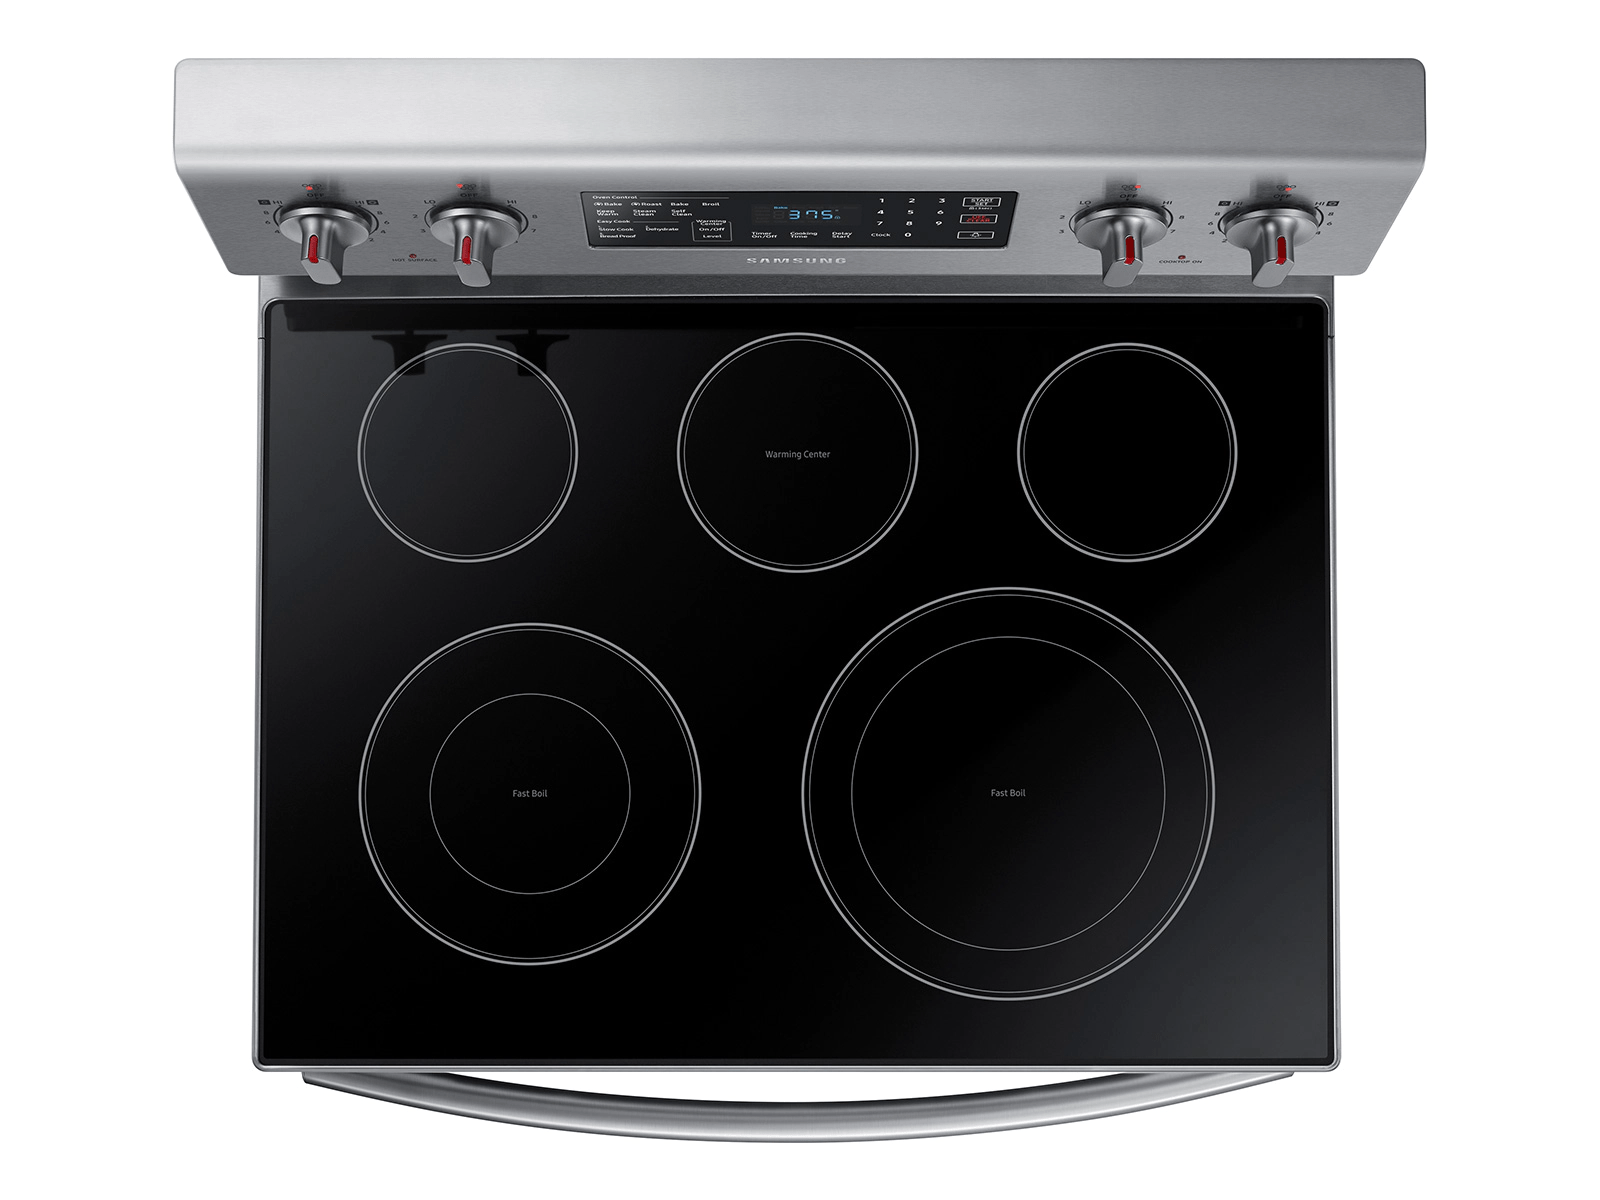 05_Range_Electric_NE59M4320SS_Top-View_Cooktop_Elements-Burners_Silver